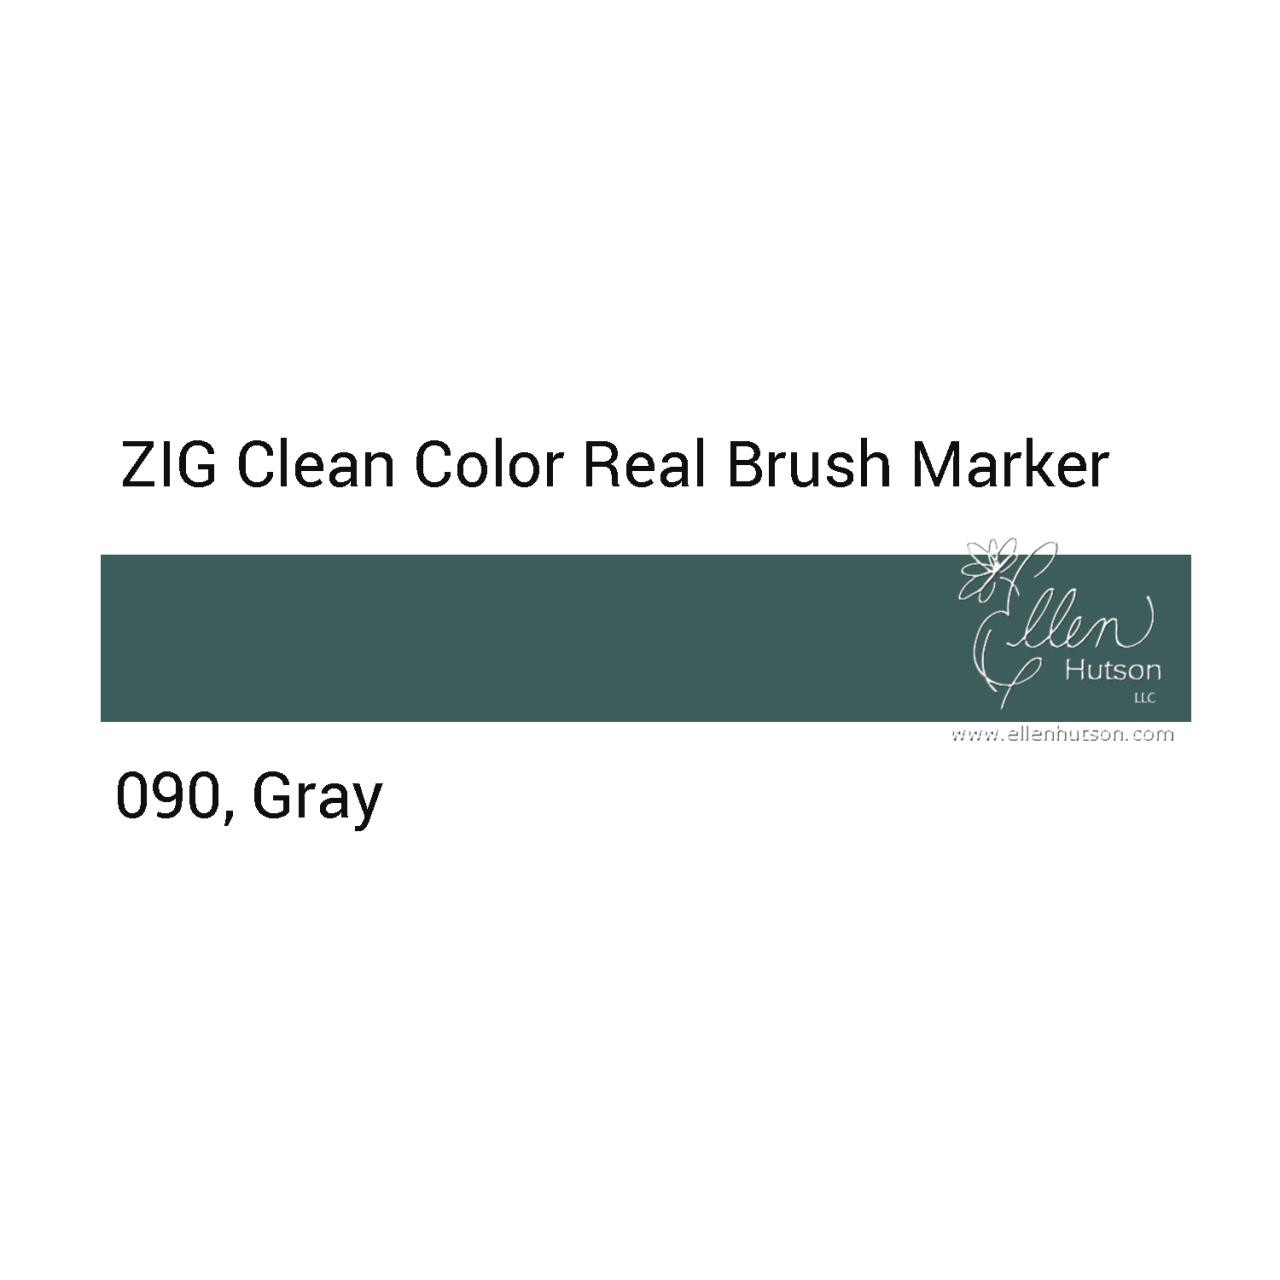 090 - Gray, ZIG Clean Color Real Brush Marker -